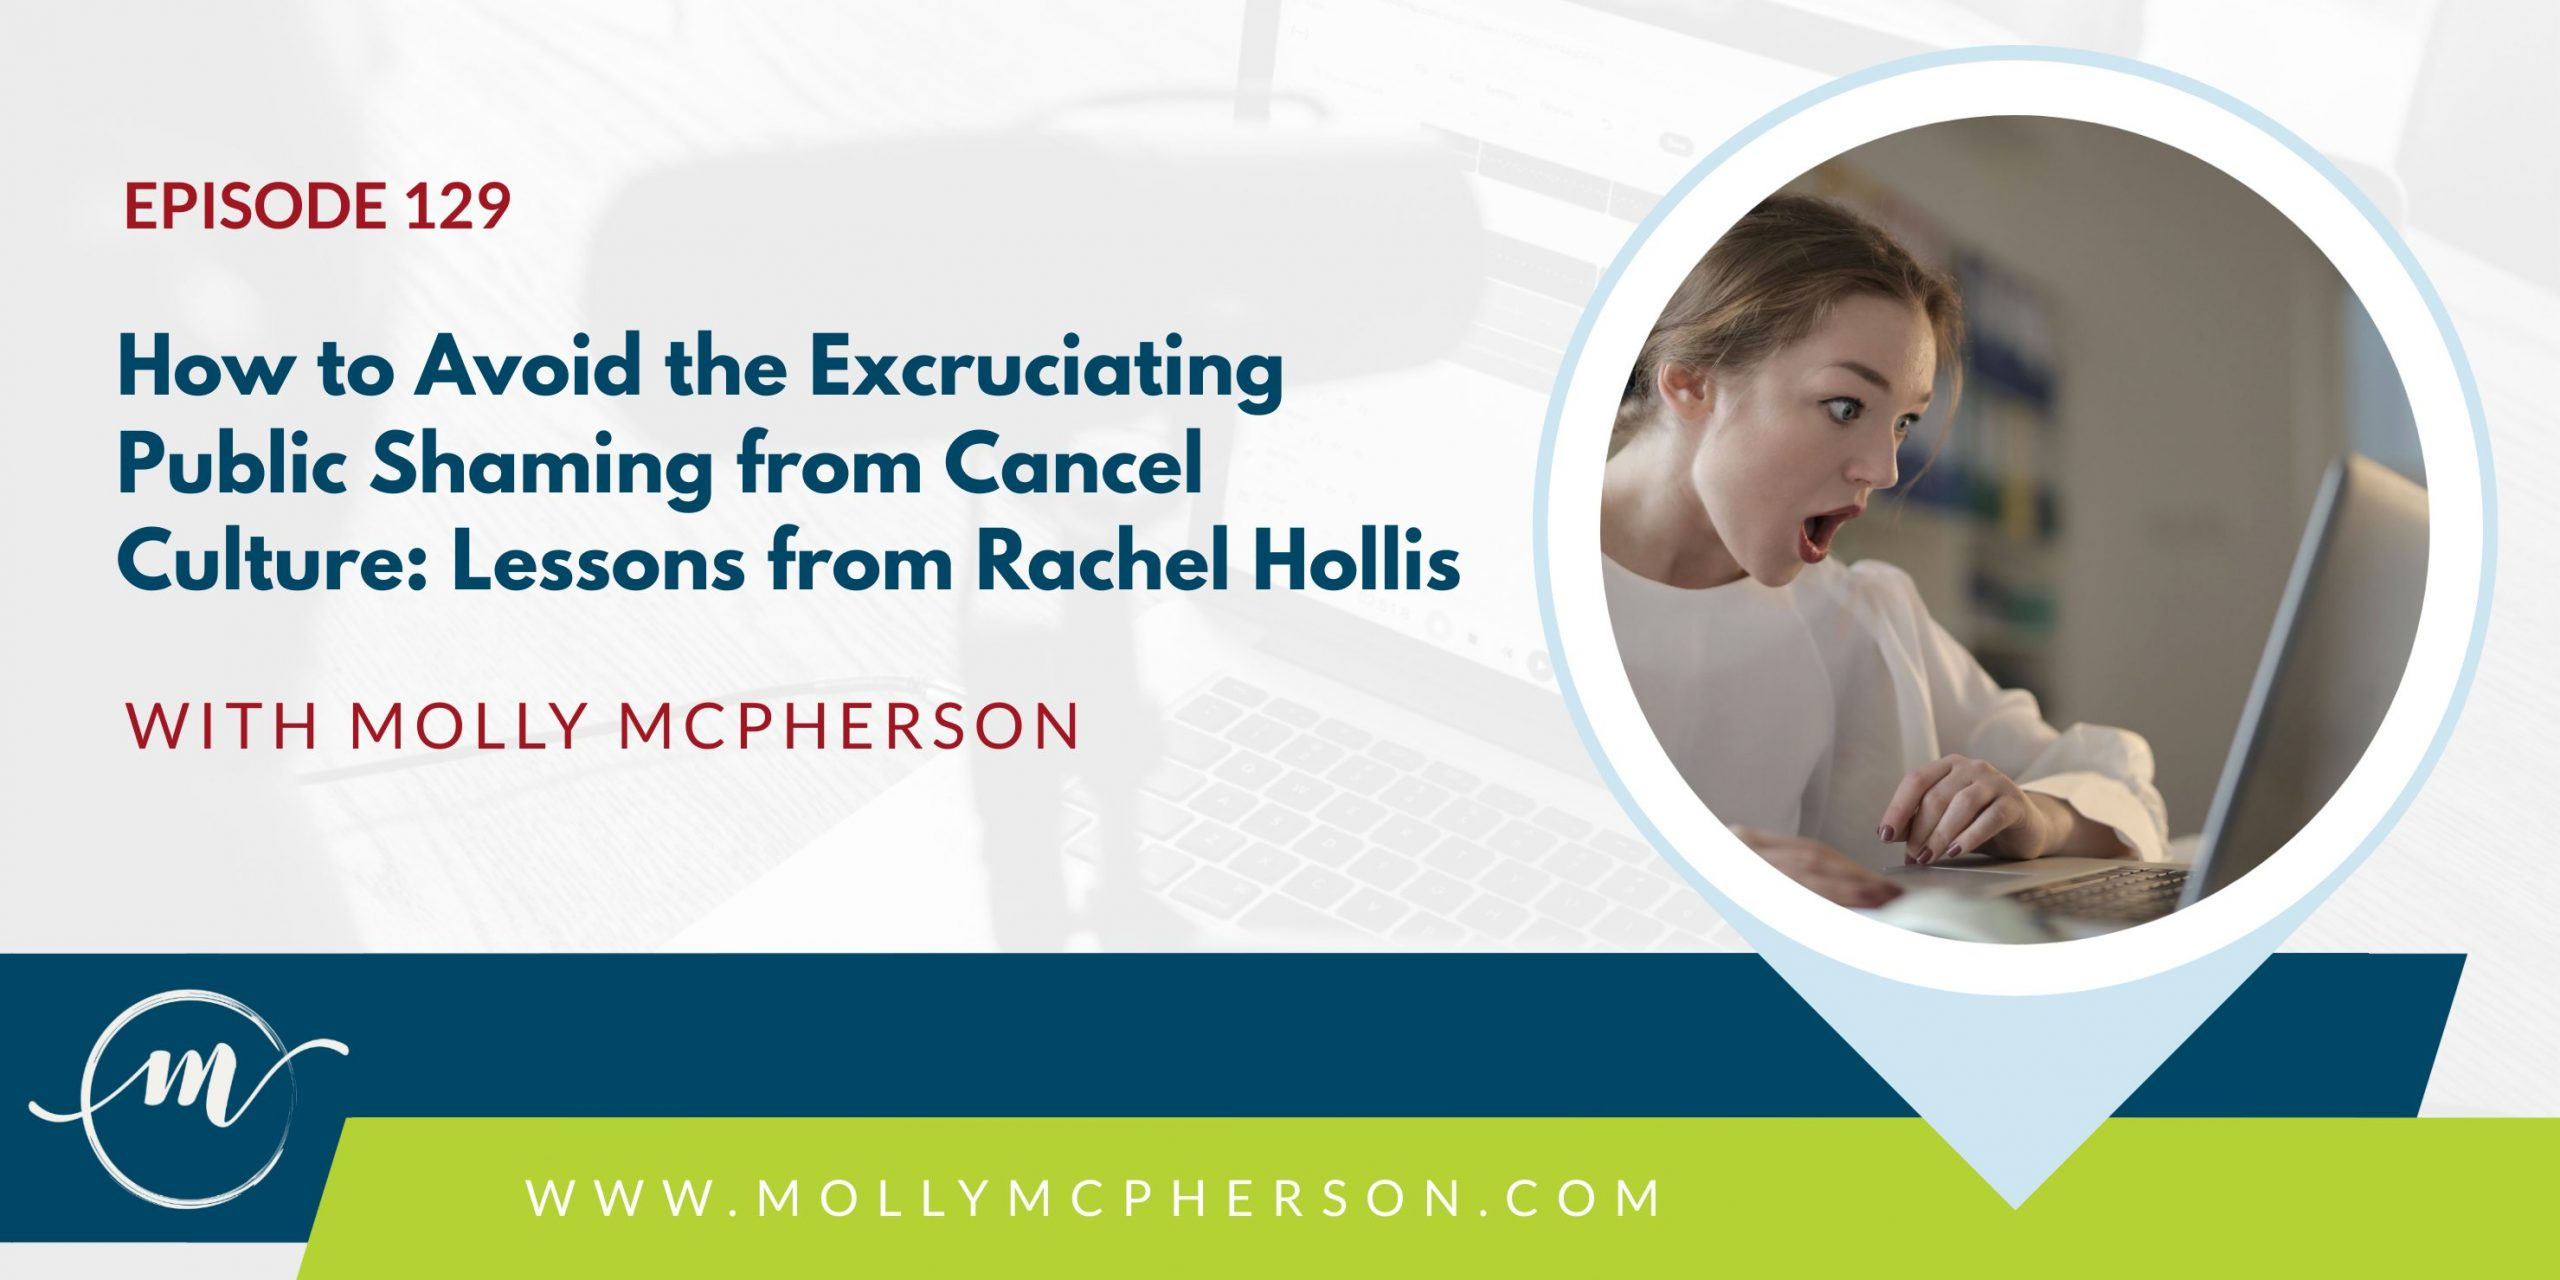 How to Avoid the Excruciating Public Shaming from Cancel Culture: Lessons from Rachel Hollis